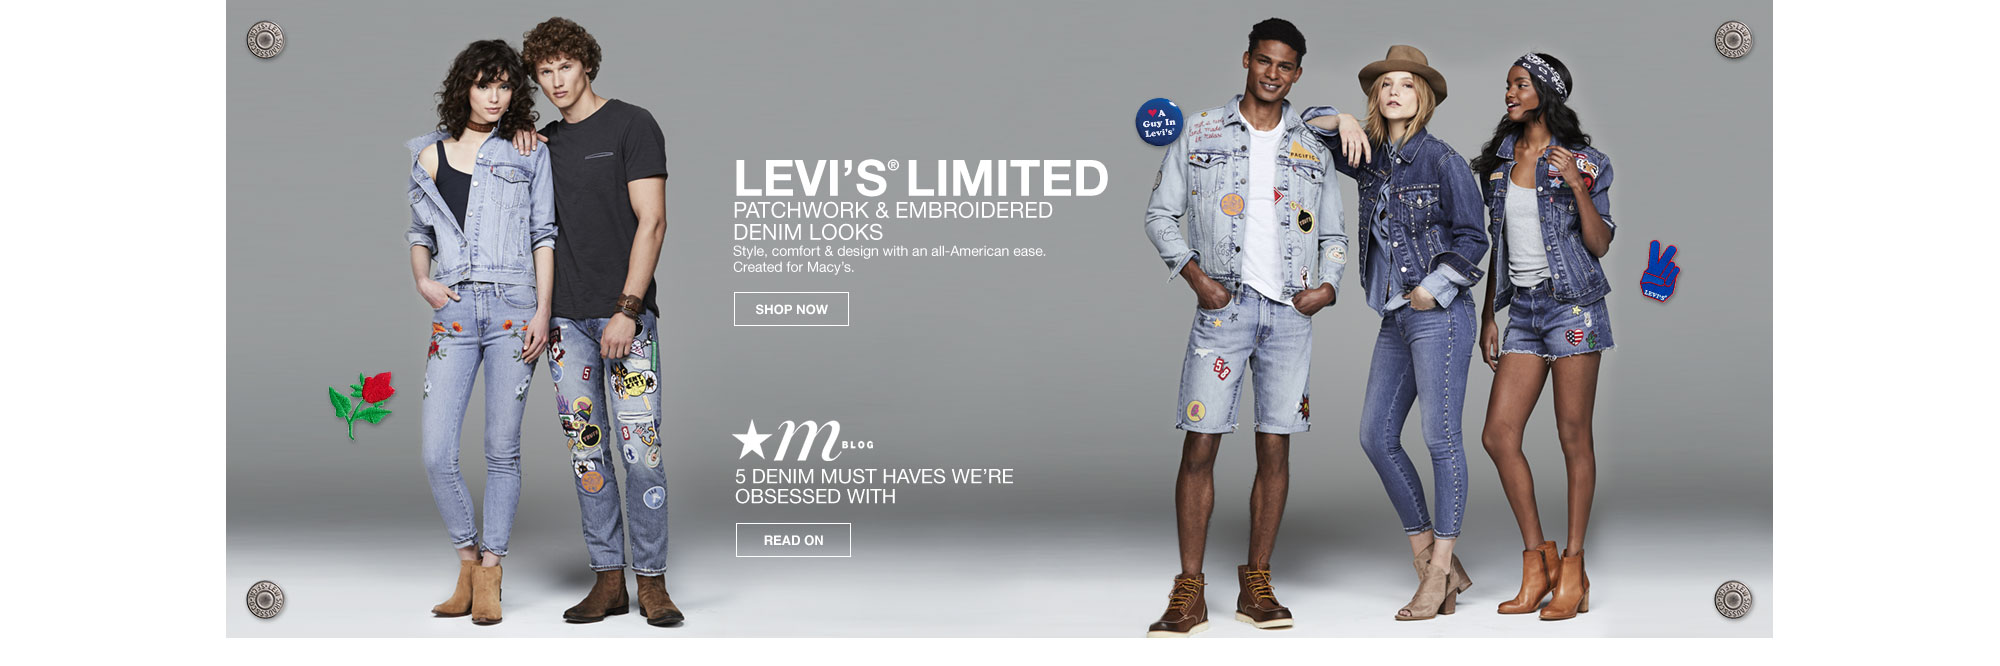 levi's limited patchwork and embroidered denim looks. style, comfort and design with an all-american ease. created for macy's. mblog. 5 denim must haves we're obsessed with